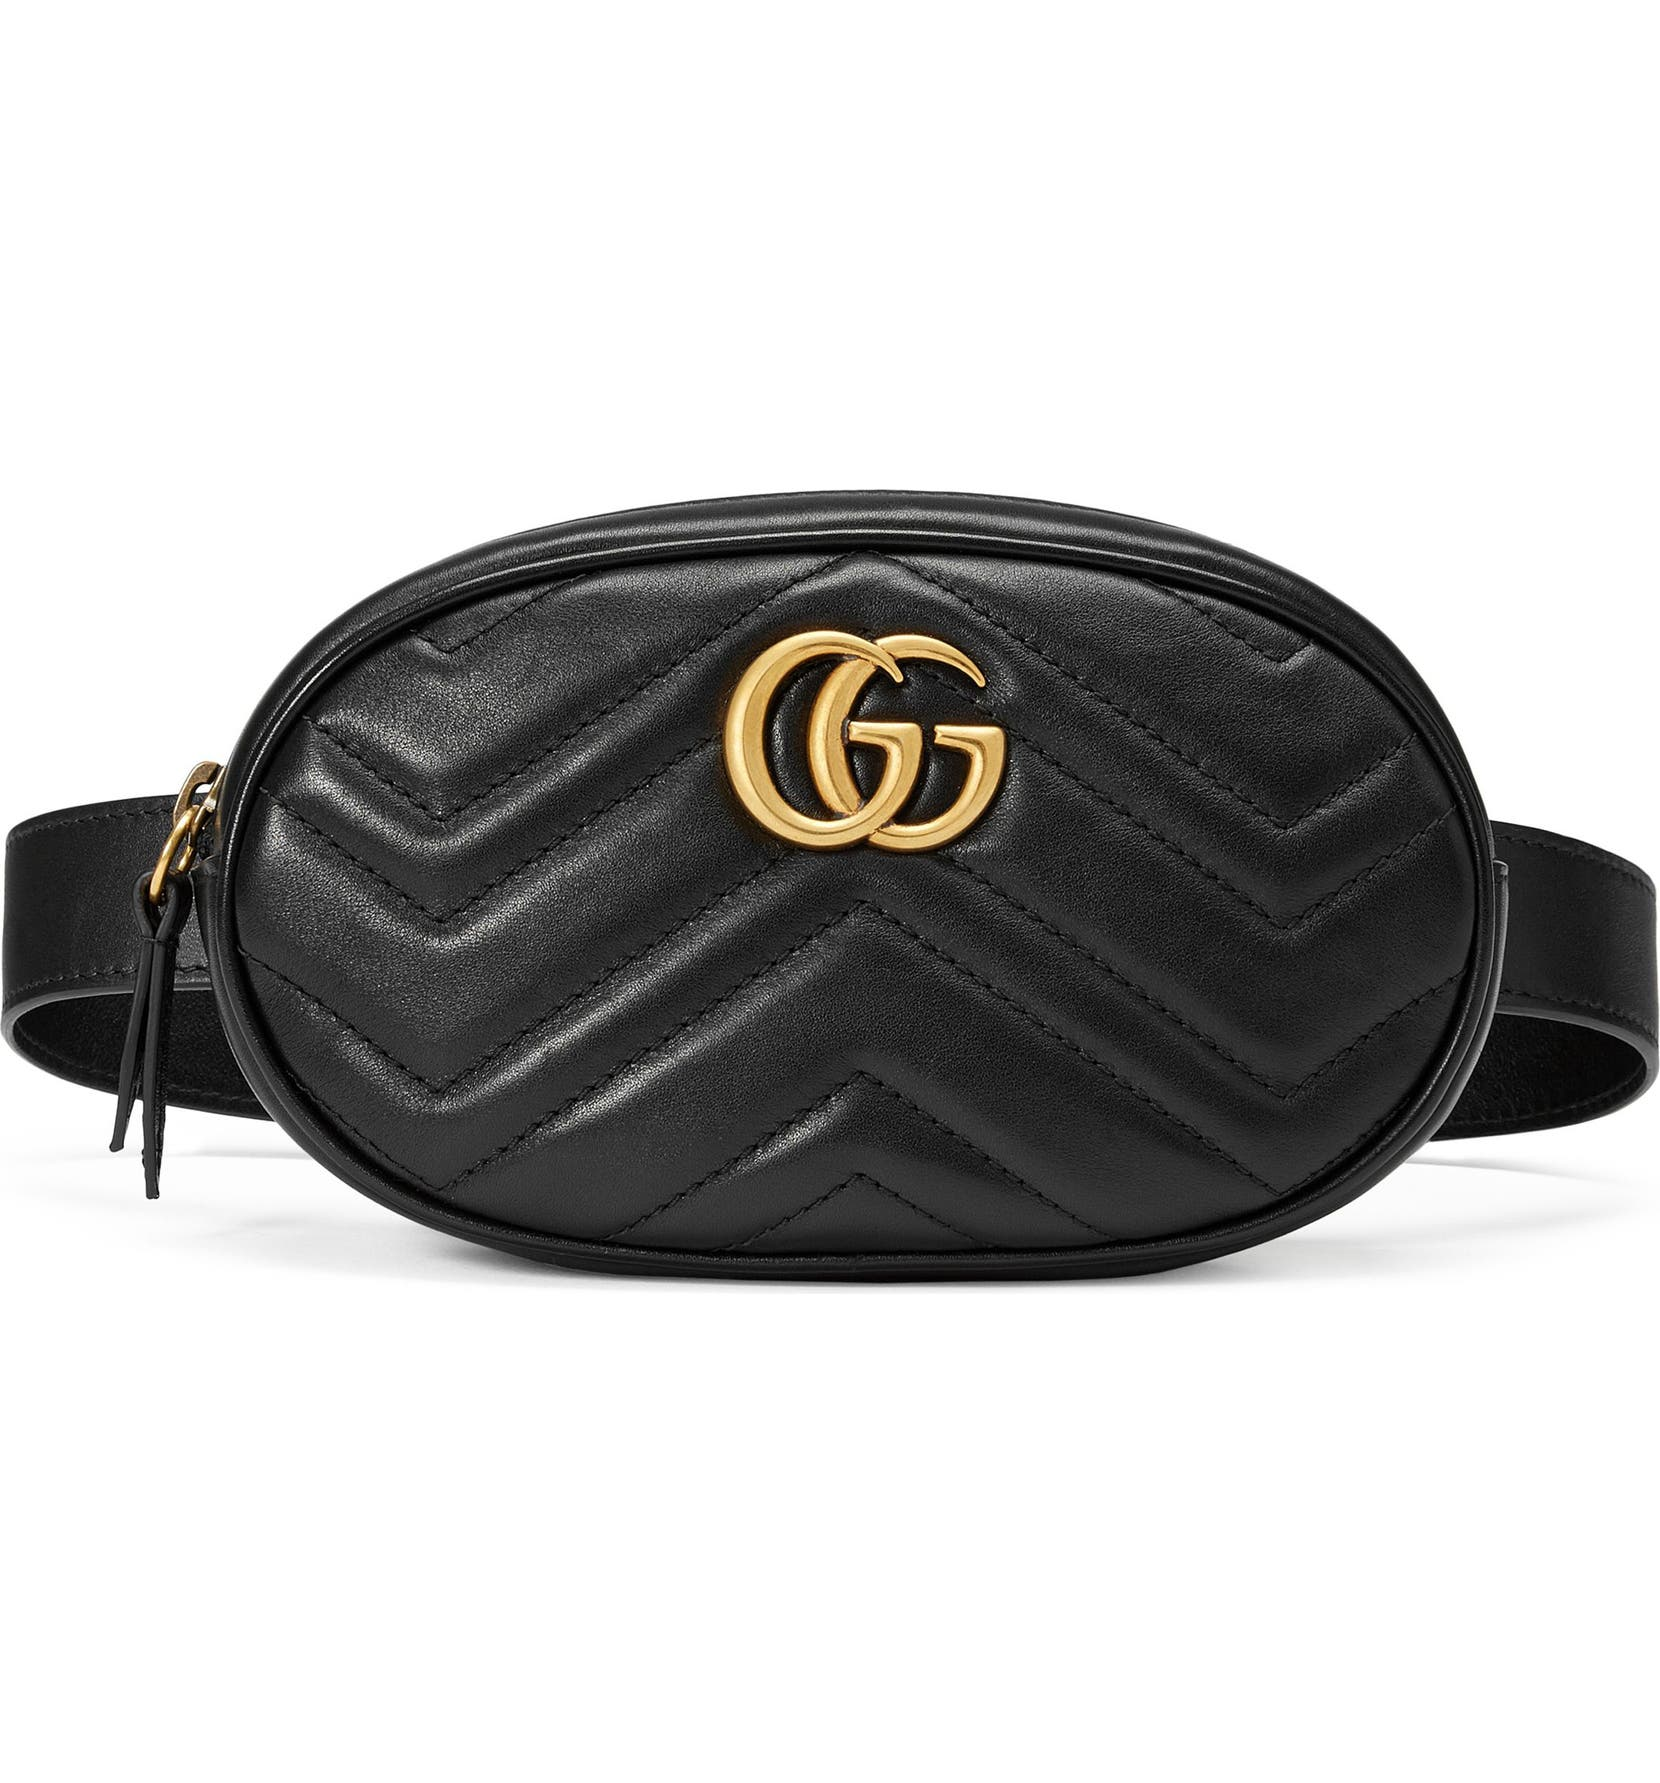 Image result for gucci belt bag